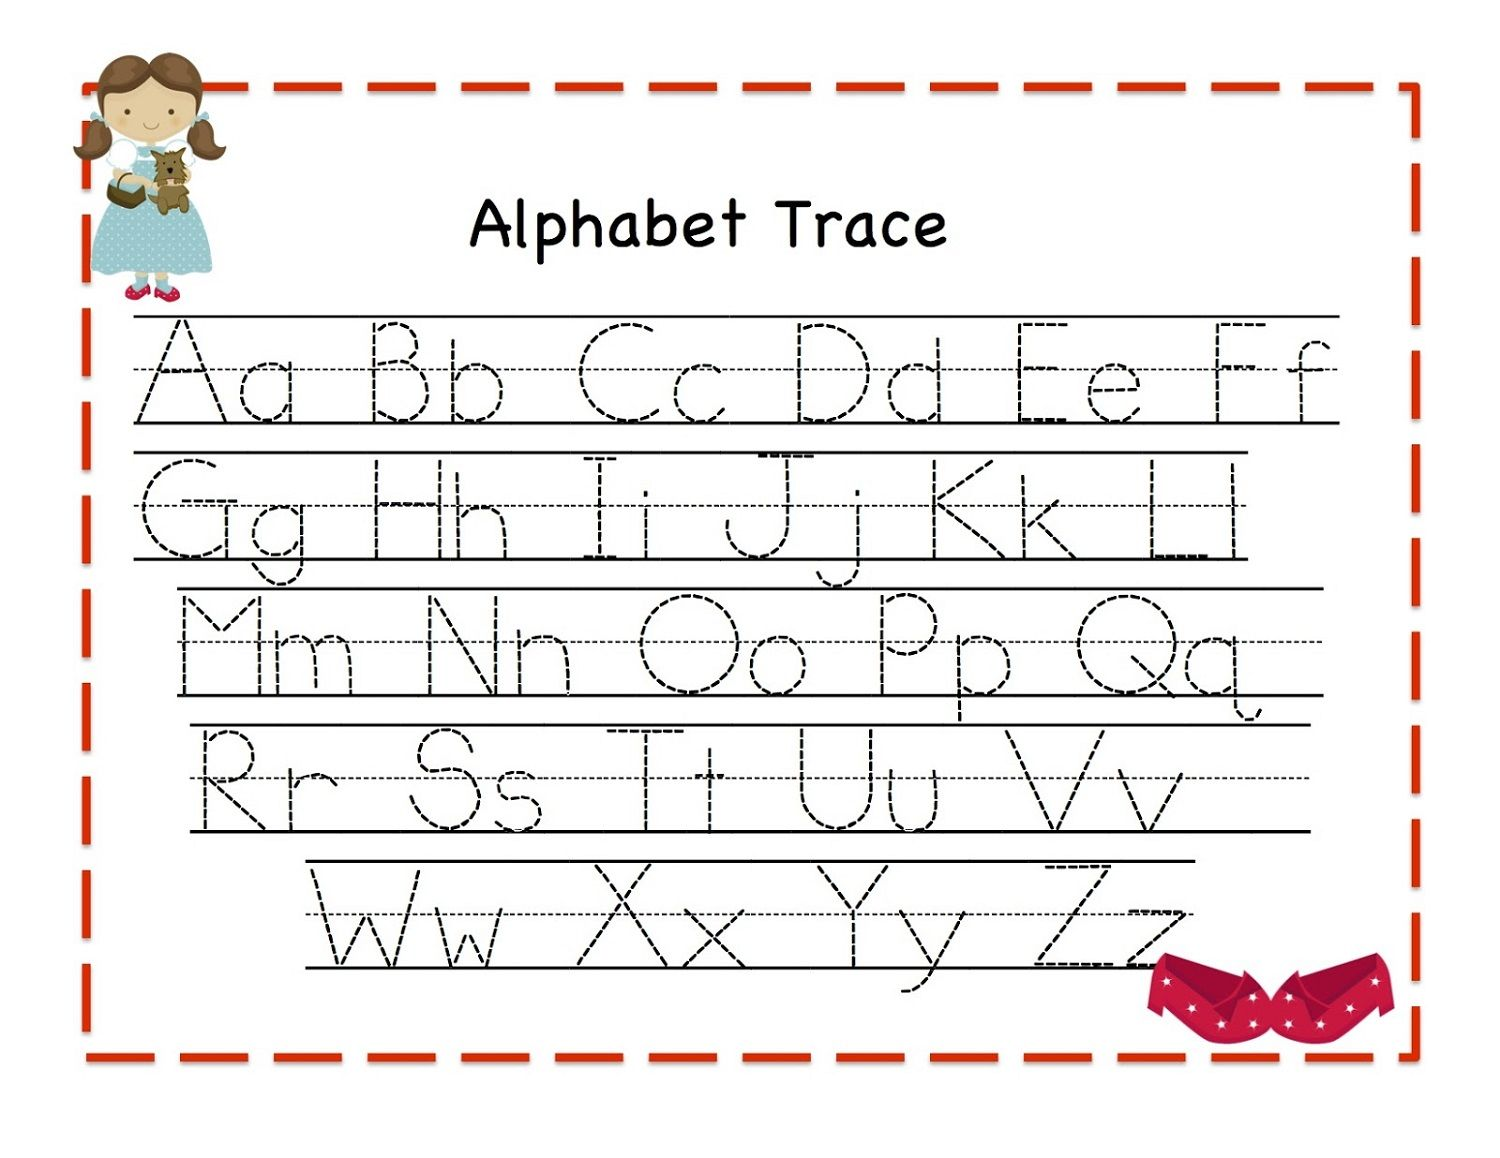 Traceable Alphabet For Learning Exercise